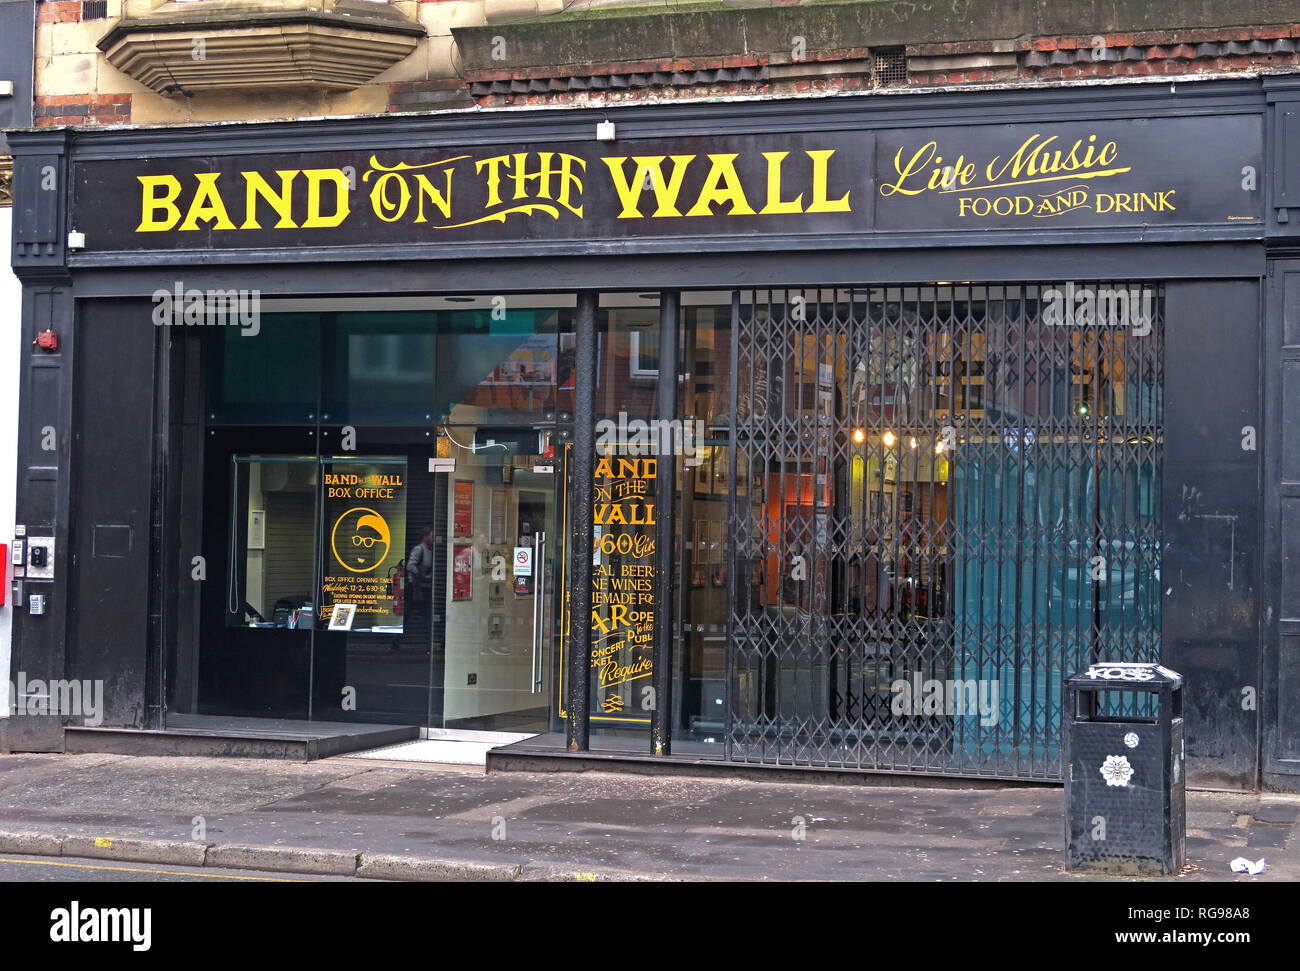 Band on the wall, music venue, 25 Swan Street Manchester, England, UK, M4 5JZ Stock Photo